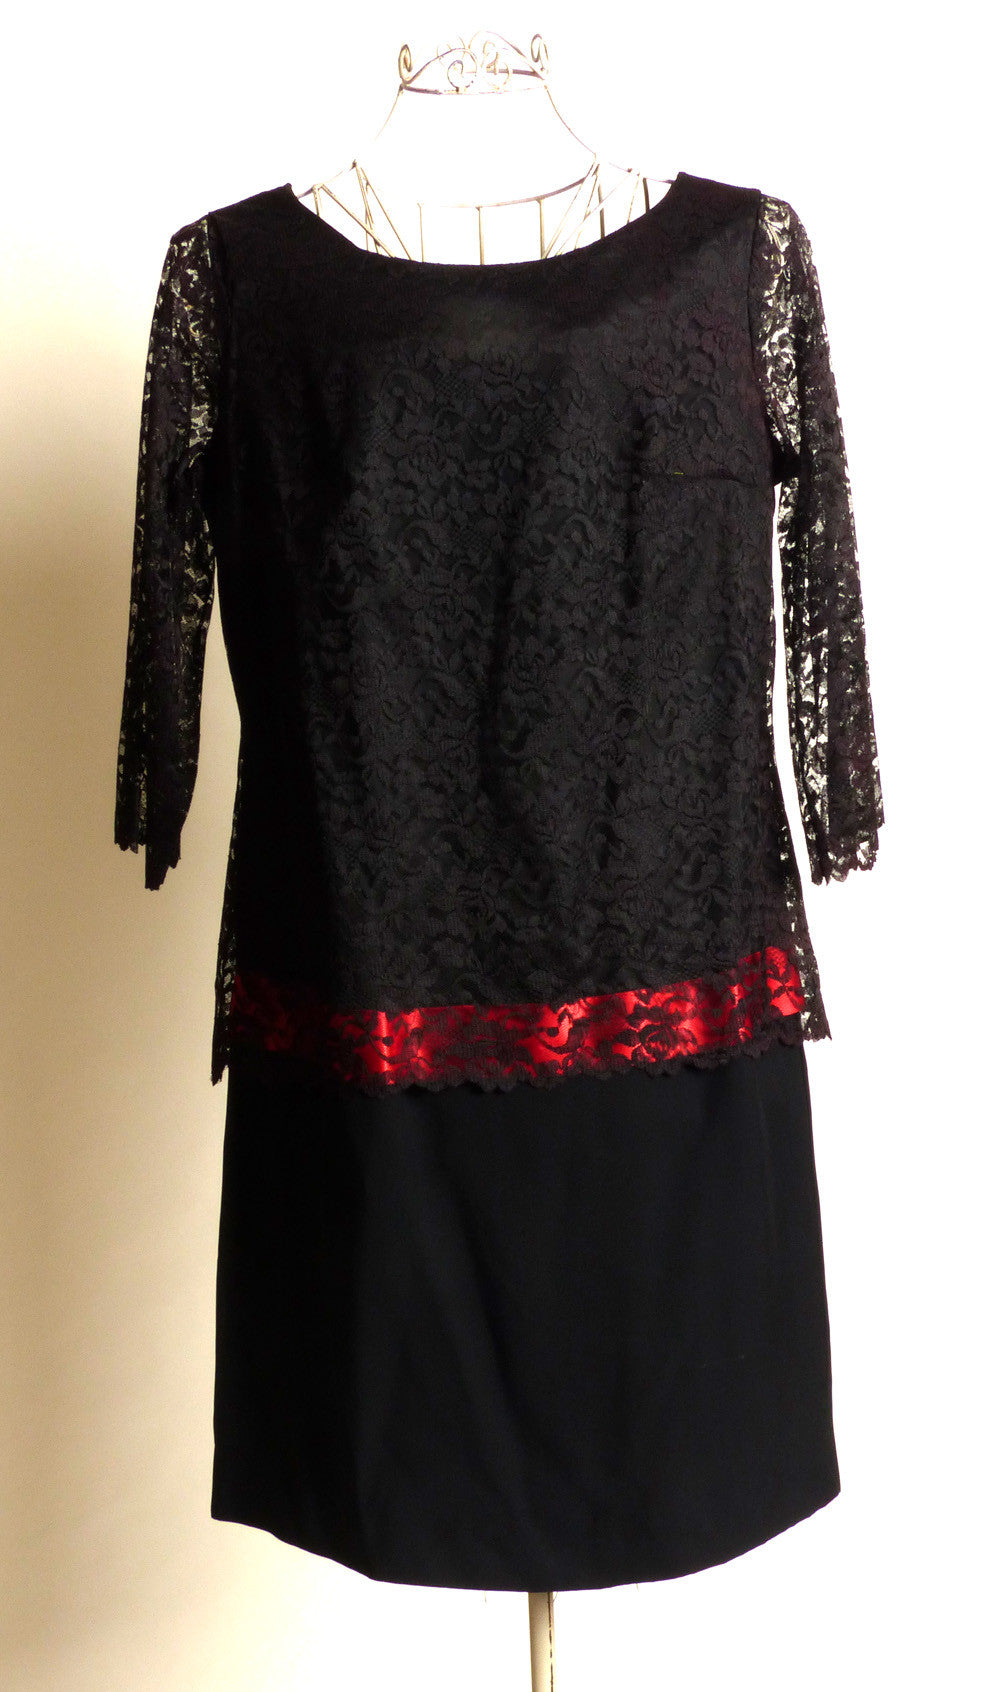 Circa 1960s Black Silk Crepe Lace Dress with Pink Accent